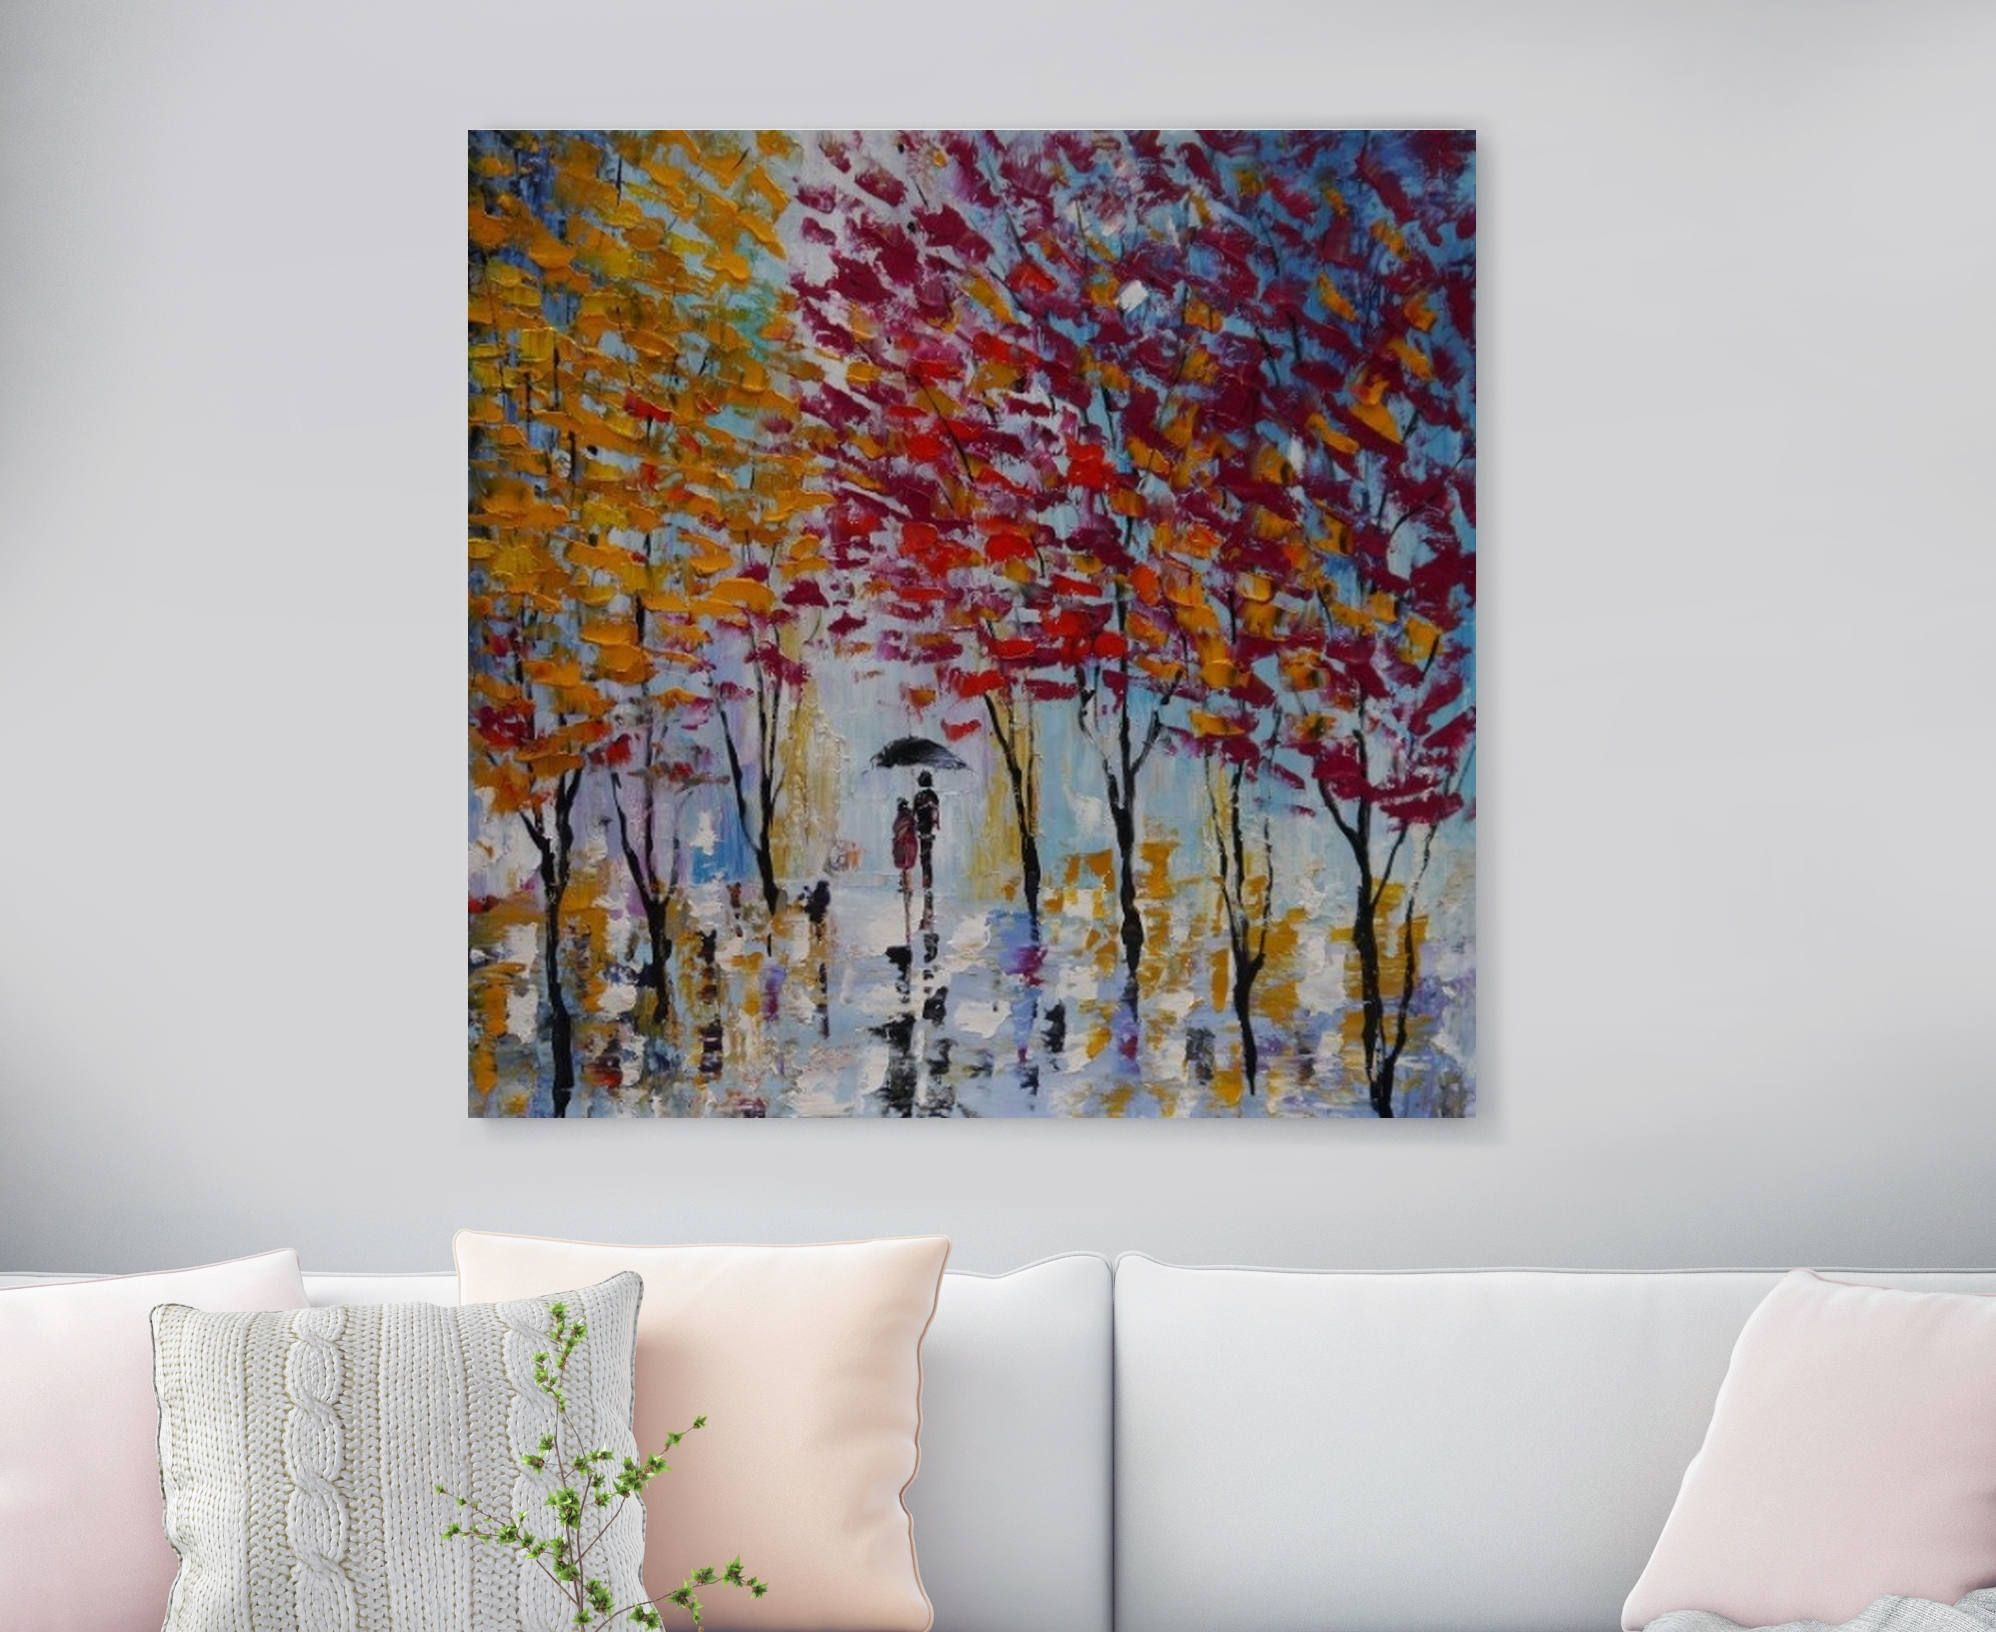 Large Original Oil Painting On Canvas, In Love, Huge Landscapes